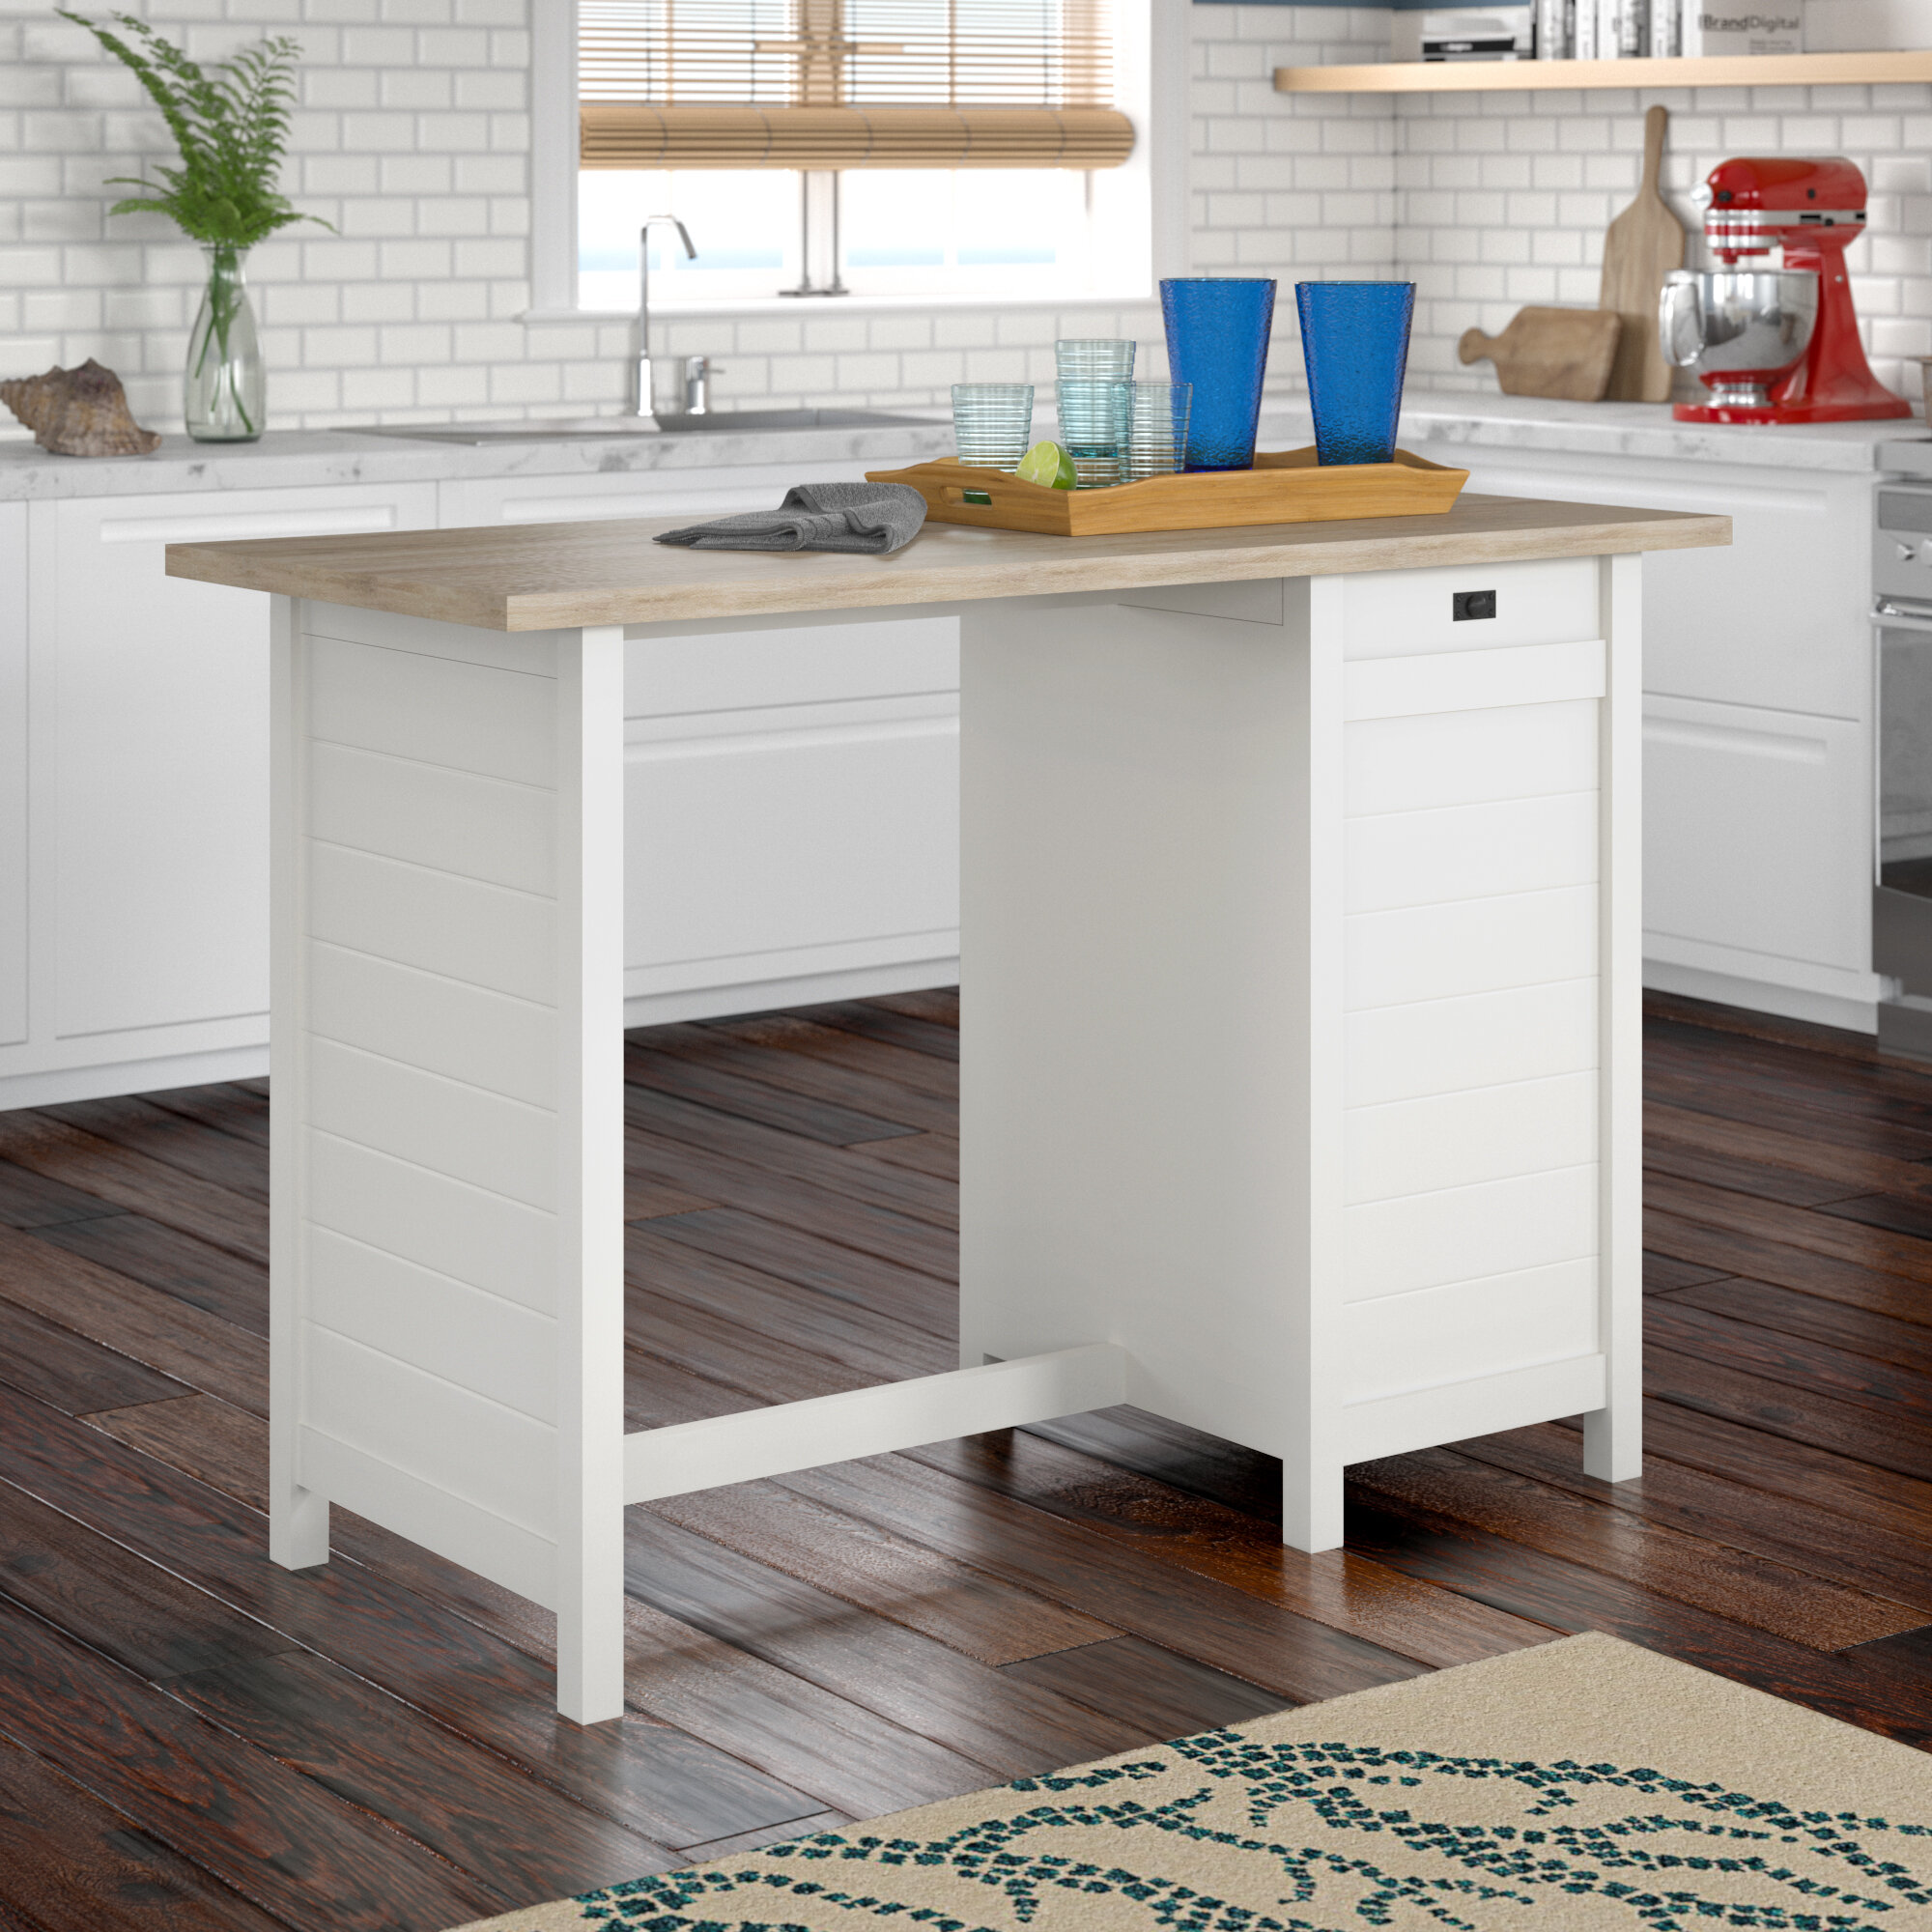 Beachcrest home hampton kitchen island with lintel oak top reviews wayfair ca